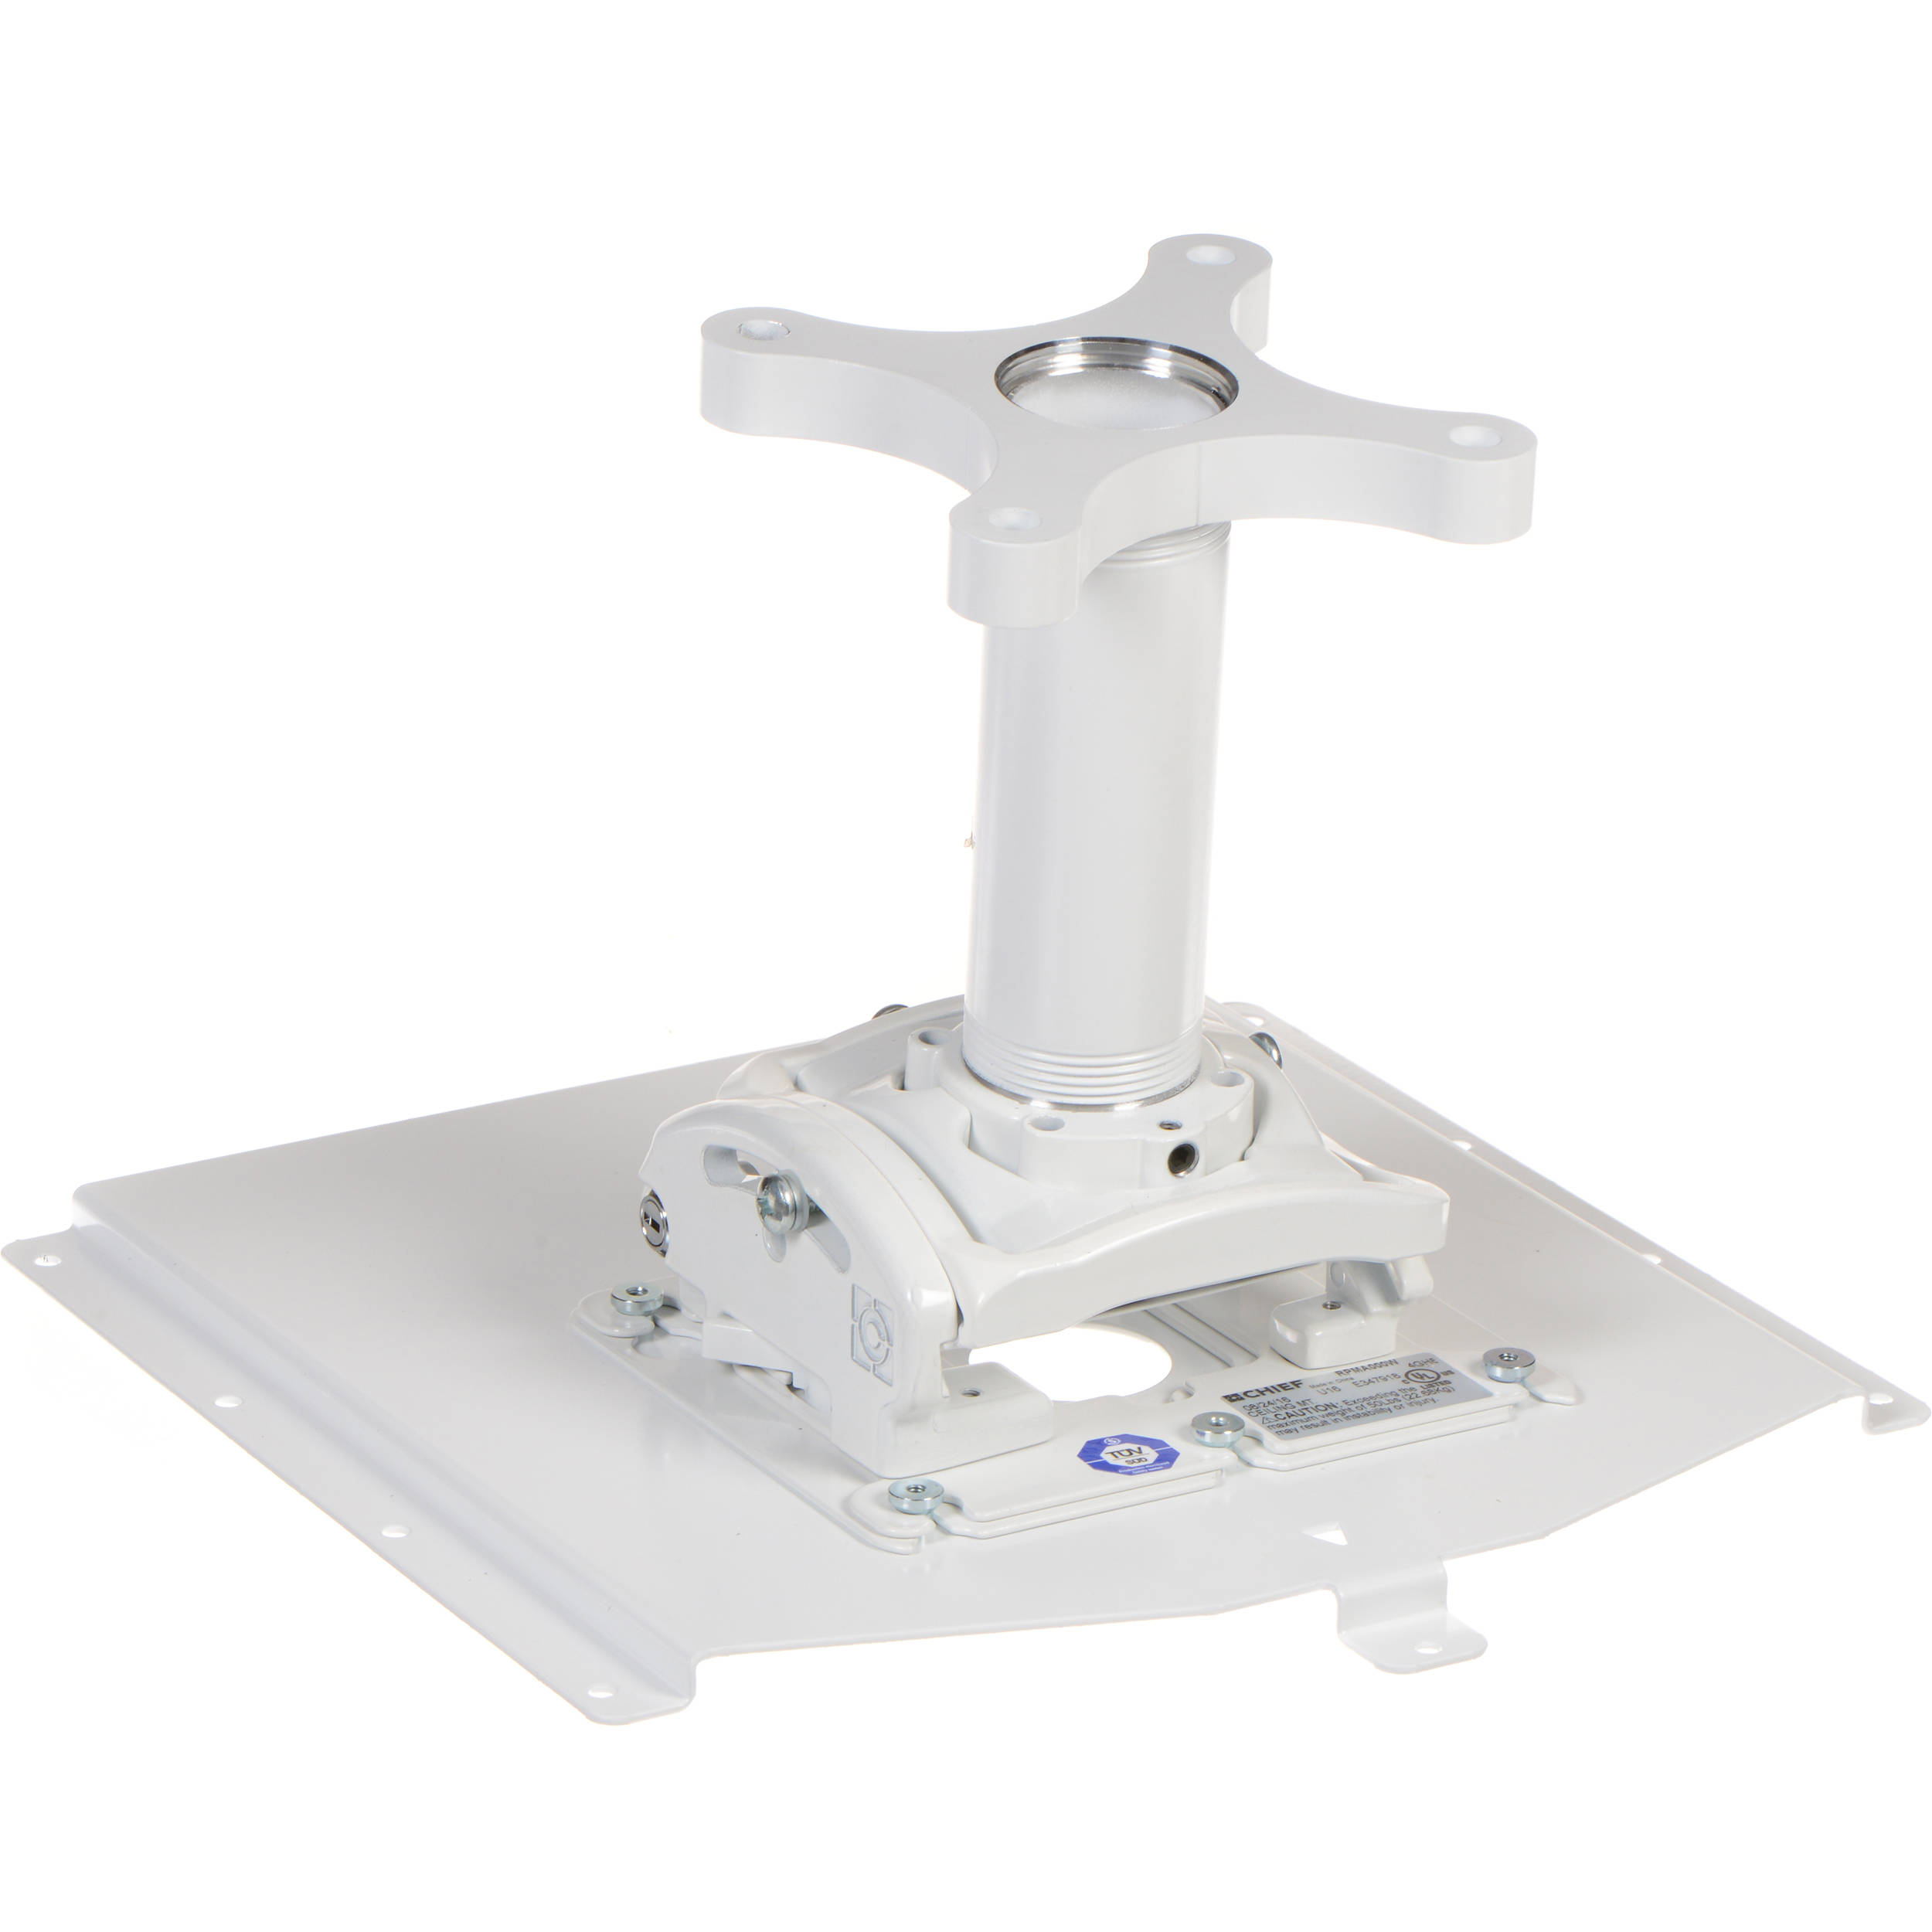 Epson Chf4000 Universal Projector Ceiling Mount Chf4000 B H